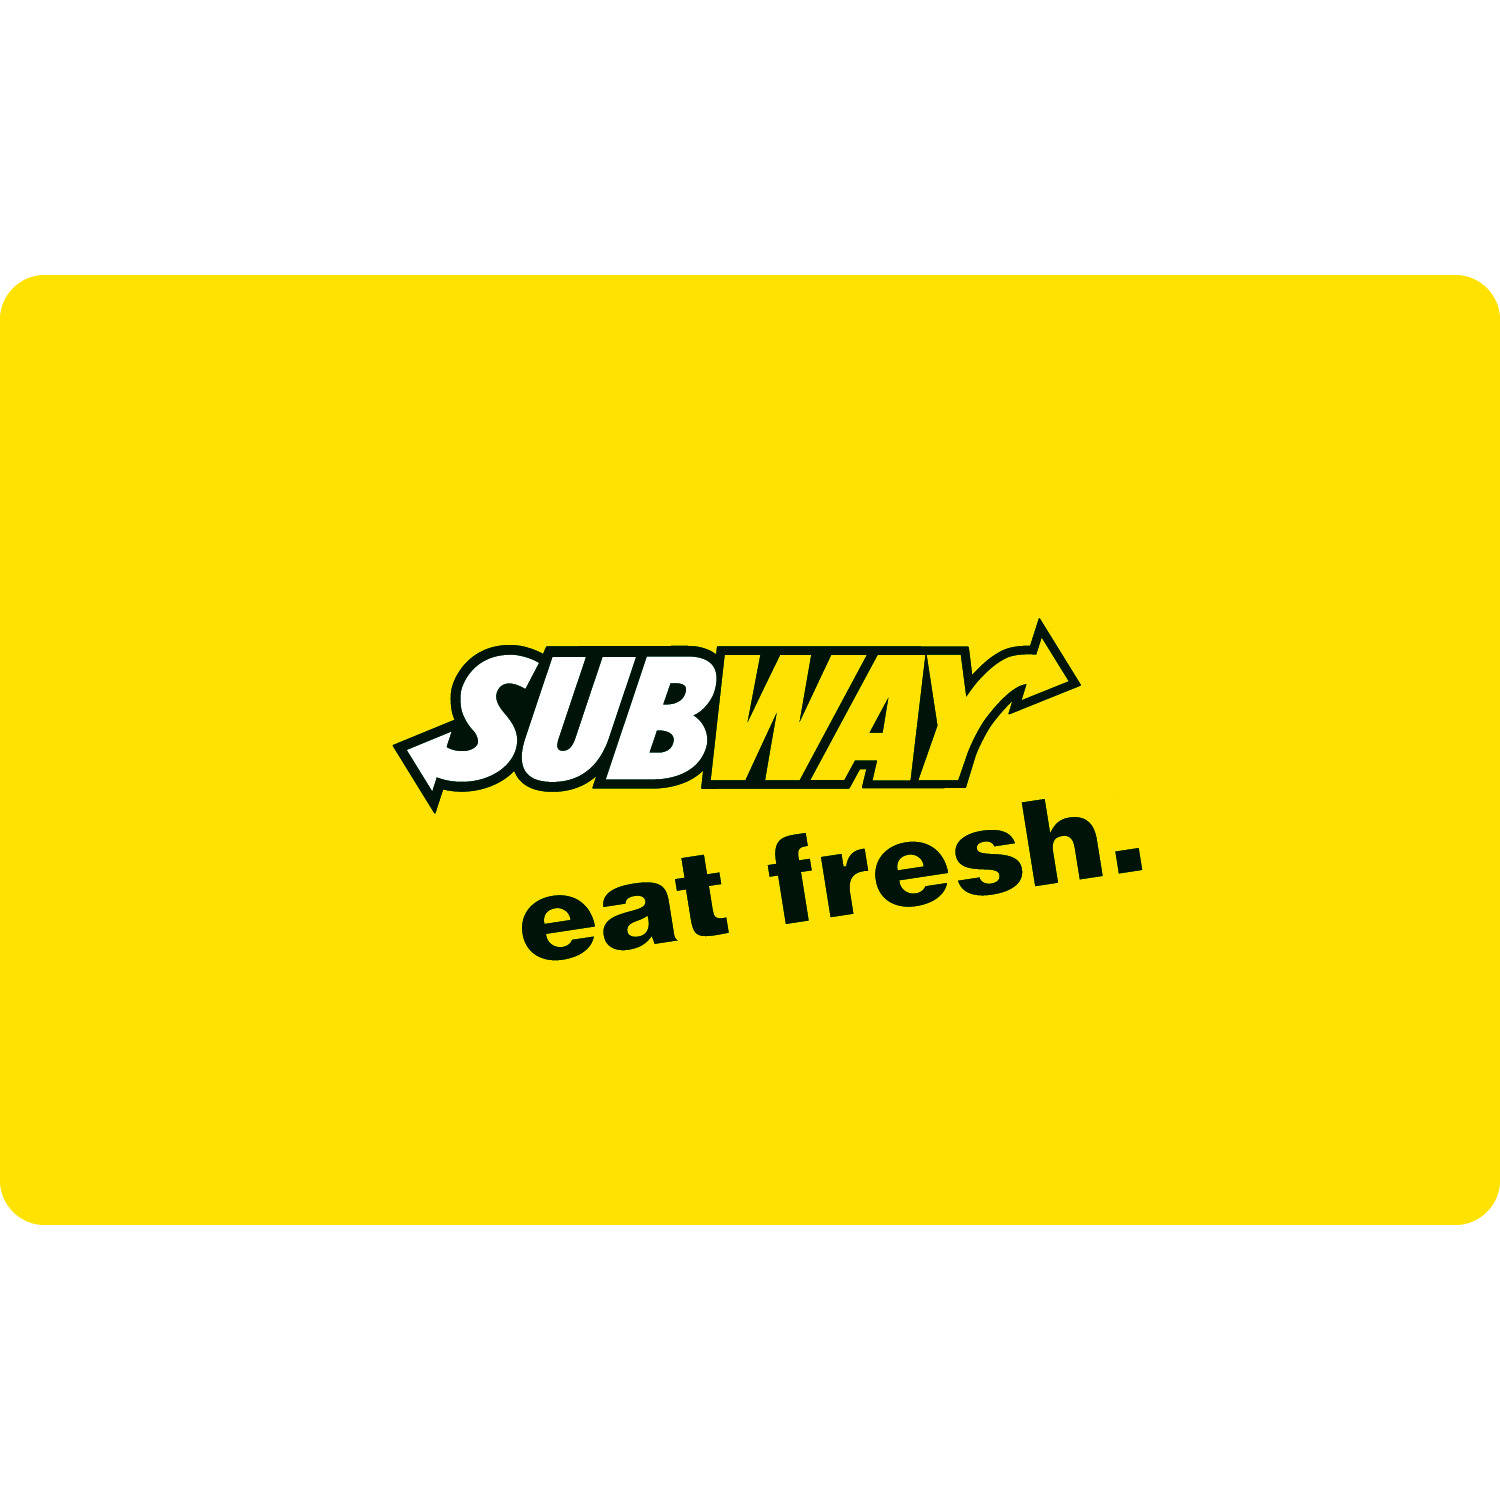 subway $25 t card walmart